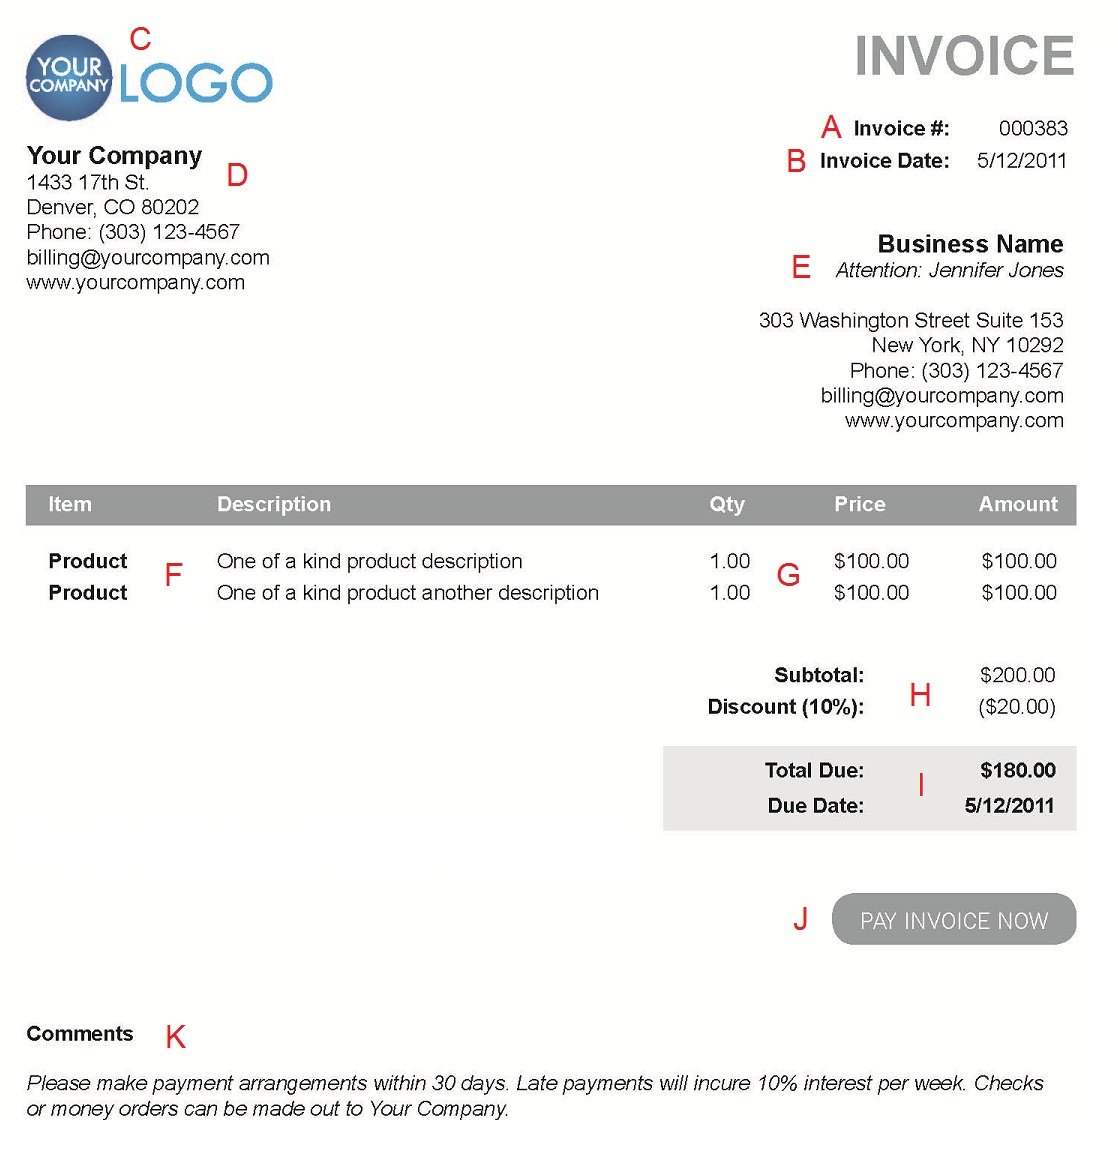 Coachoutletonlineplusus  Sweet The  Different Sections Of An Electronic Payment Invoice With Goodlooking A  With Delightful Invoice Programs For Small Business Free Also New Car Invoice Prices  In Addition Reconciling Invoices And Ebay Buyer Invoice As Well As Toyota Highlander Invoice Additionally Auto Shop Invoice Template From Paysimplecom With Coachoutletonlineplusus  Goodlooking The  Different Sections Of An Electronic Payment Invoice With Delightful A  And Sweet Invoice Programs For Small Business Free Also New Car Invoice Prices  In Addition Reconciling Invoices From Paysimplecom